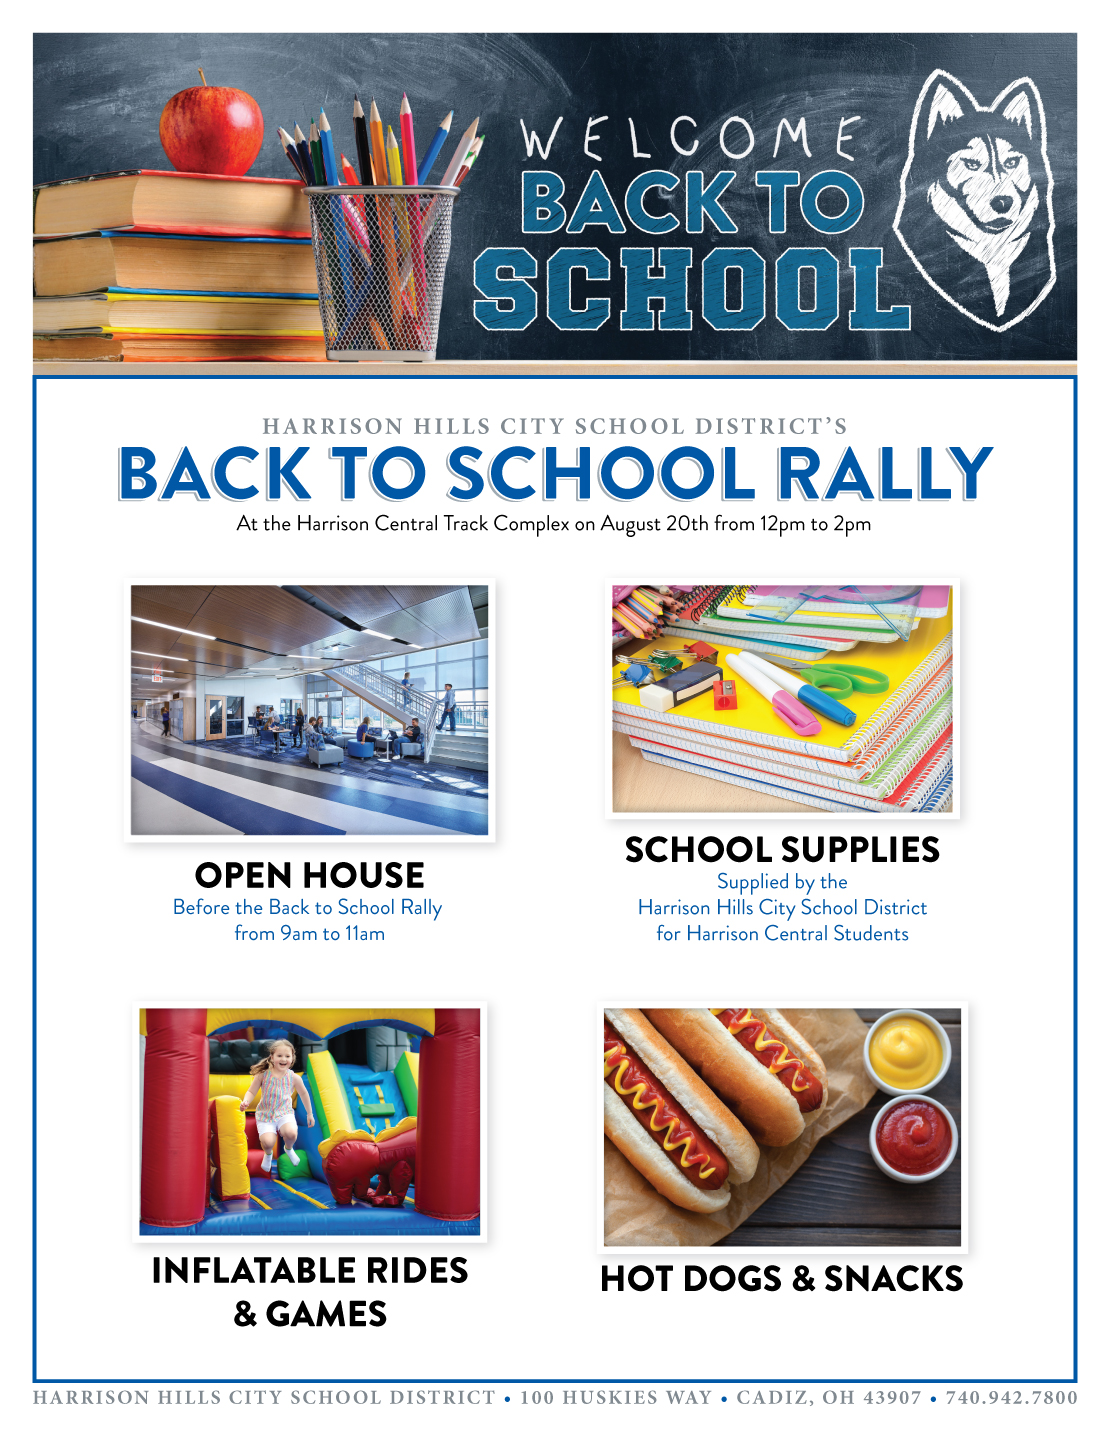 Harrison Hills City School District's Back to School Rally will be at the Harrison Central Track Complex on August 20th from 12pm to 2pm. There will be an open house before the Back to School Rally from 9am to 11 am. The rally will include school supplies supplied by the Harrison Hills City School District for Harrison Central Students, inflatable rides and games, and hot dogs and snacks.